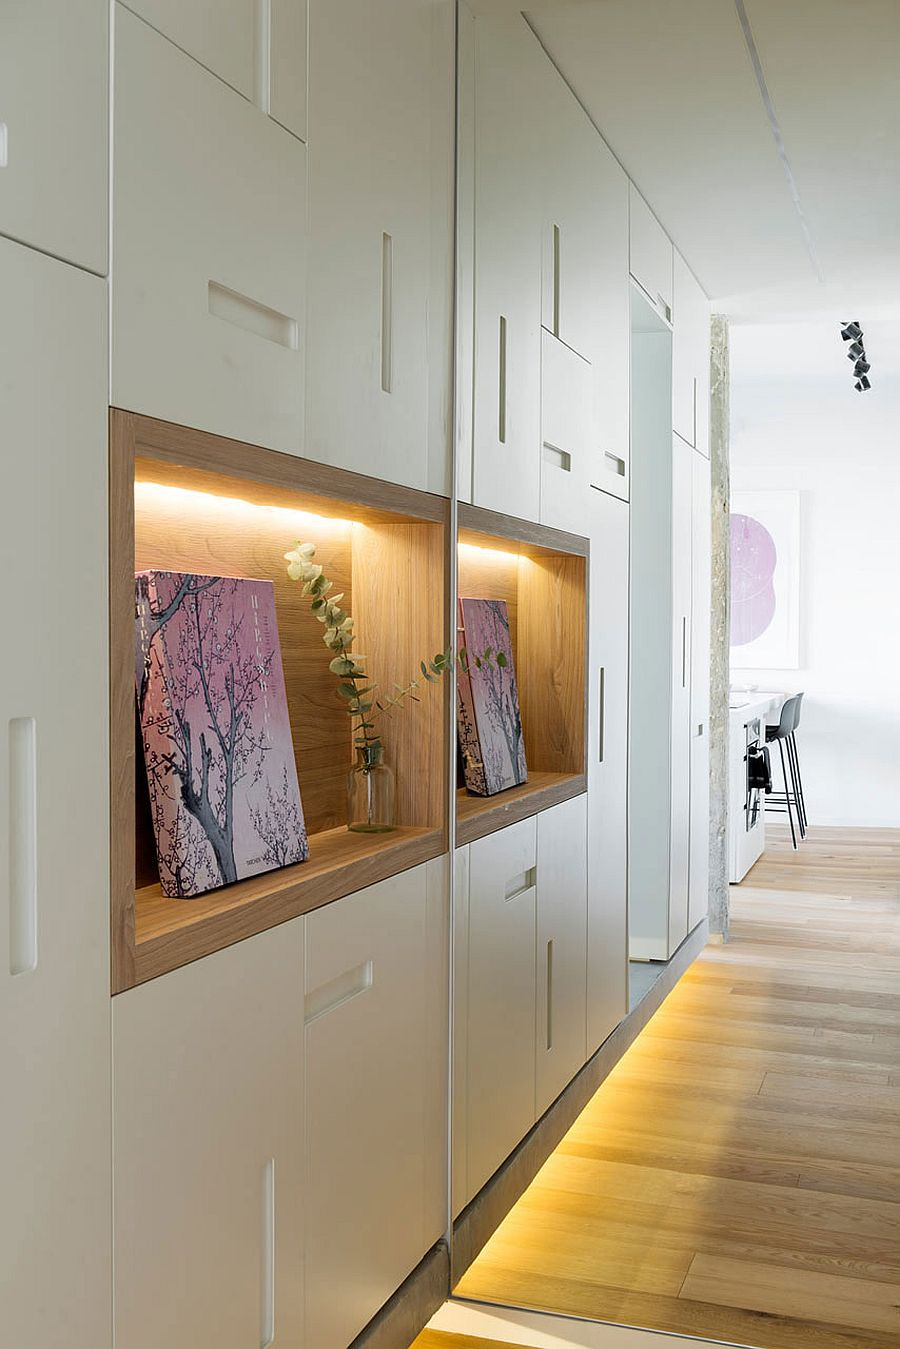 Wooden niches surrounded by bespoke cabinets at the entrance of the apartment